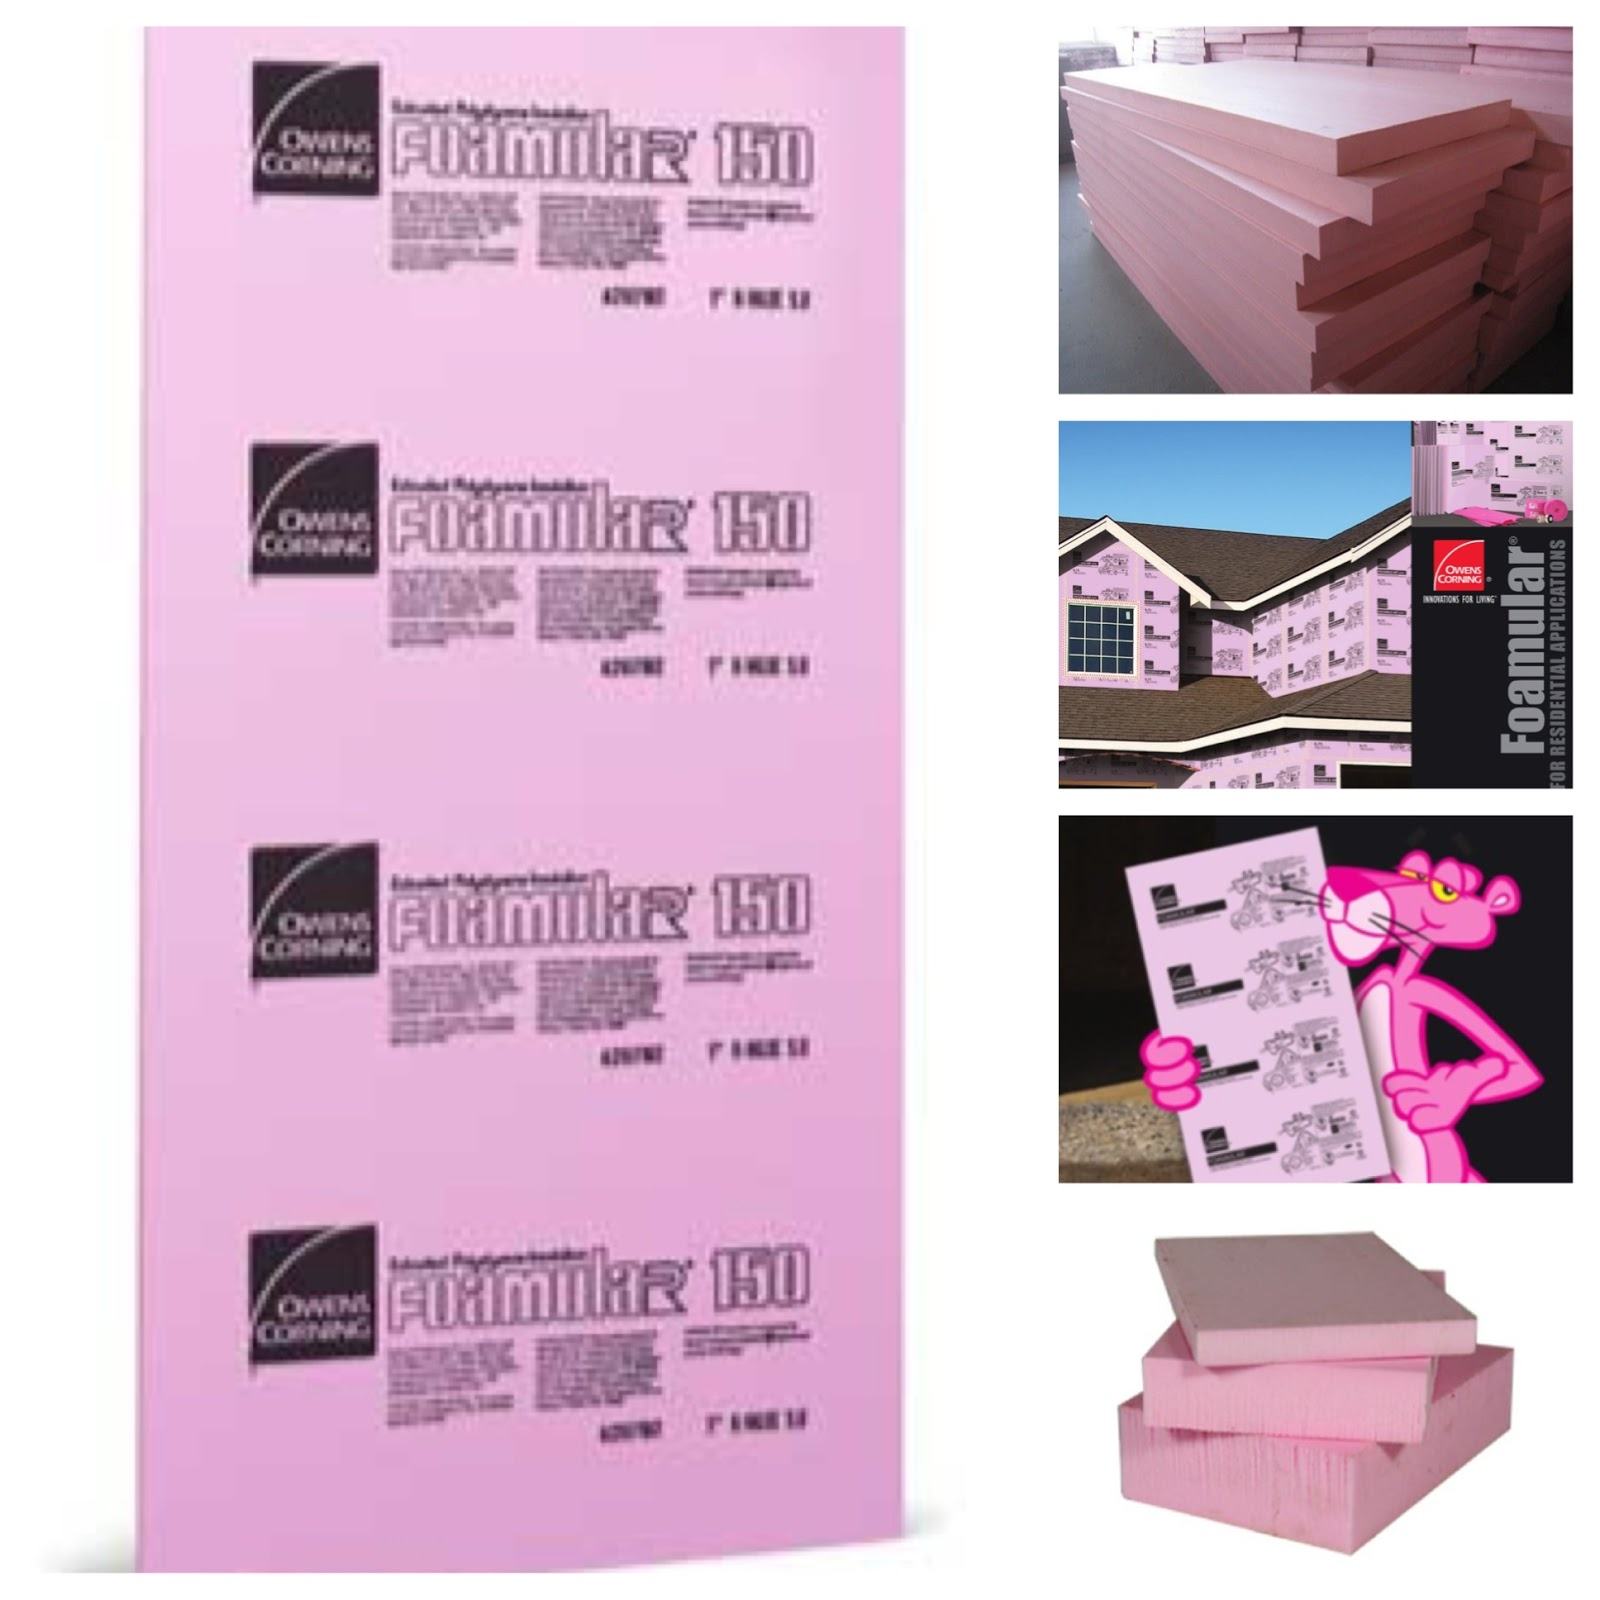 this post is going to be about the use of owens corning pink foamular insulation foam for crafting and prop making i found out about this amazing substance